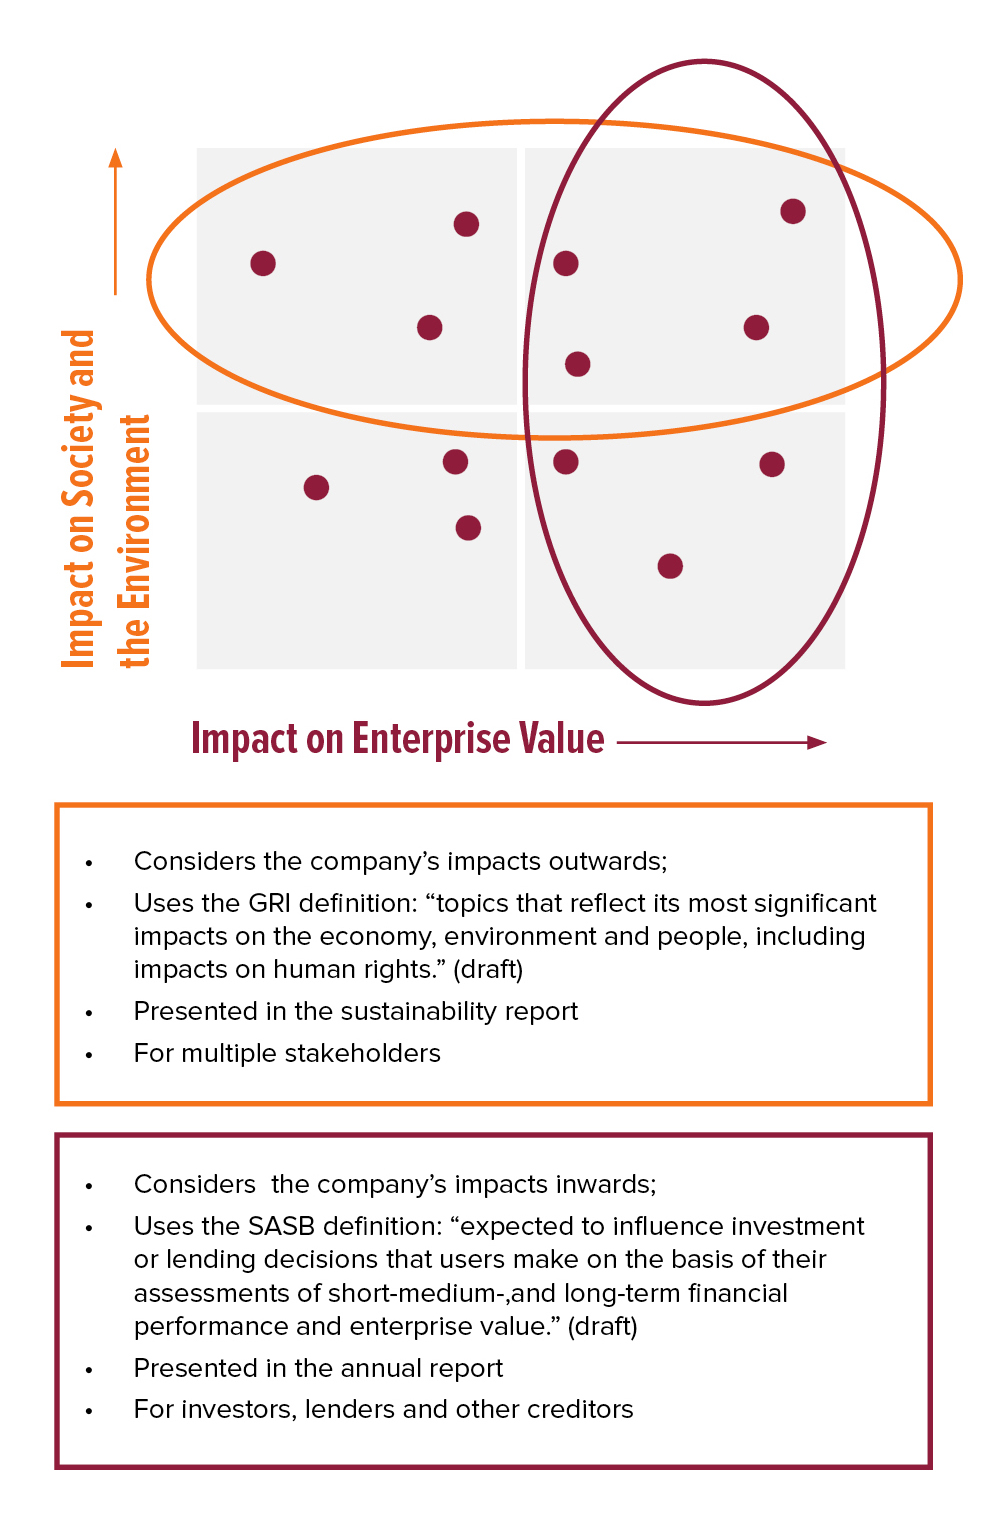 Graphic shows materiality's impact on enterprise value and impact of society and the environment